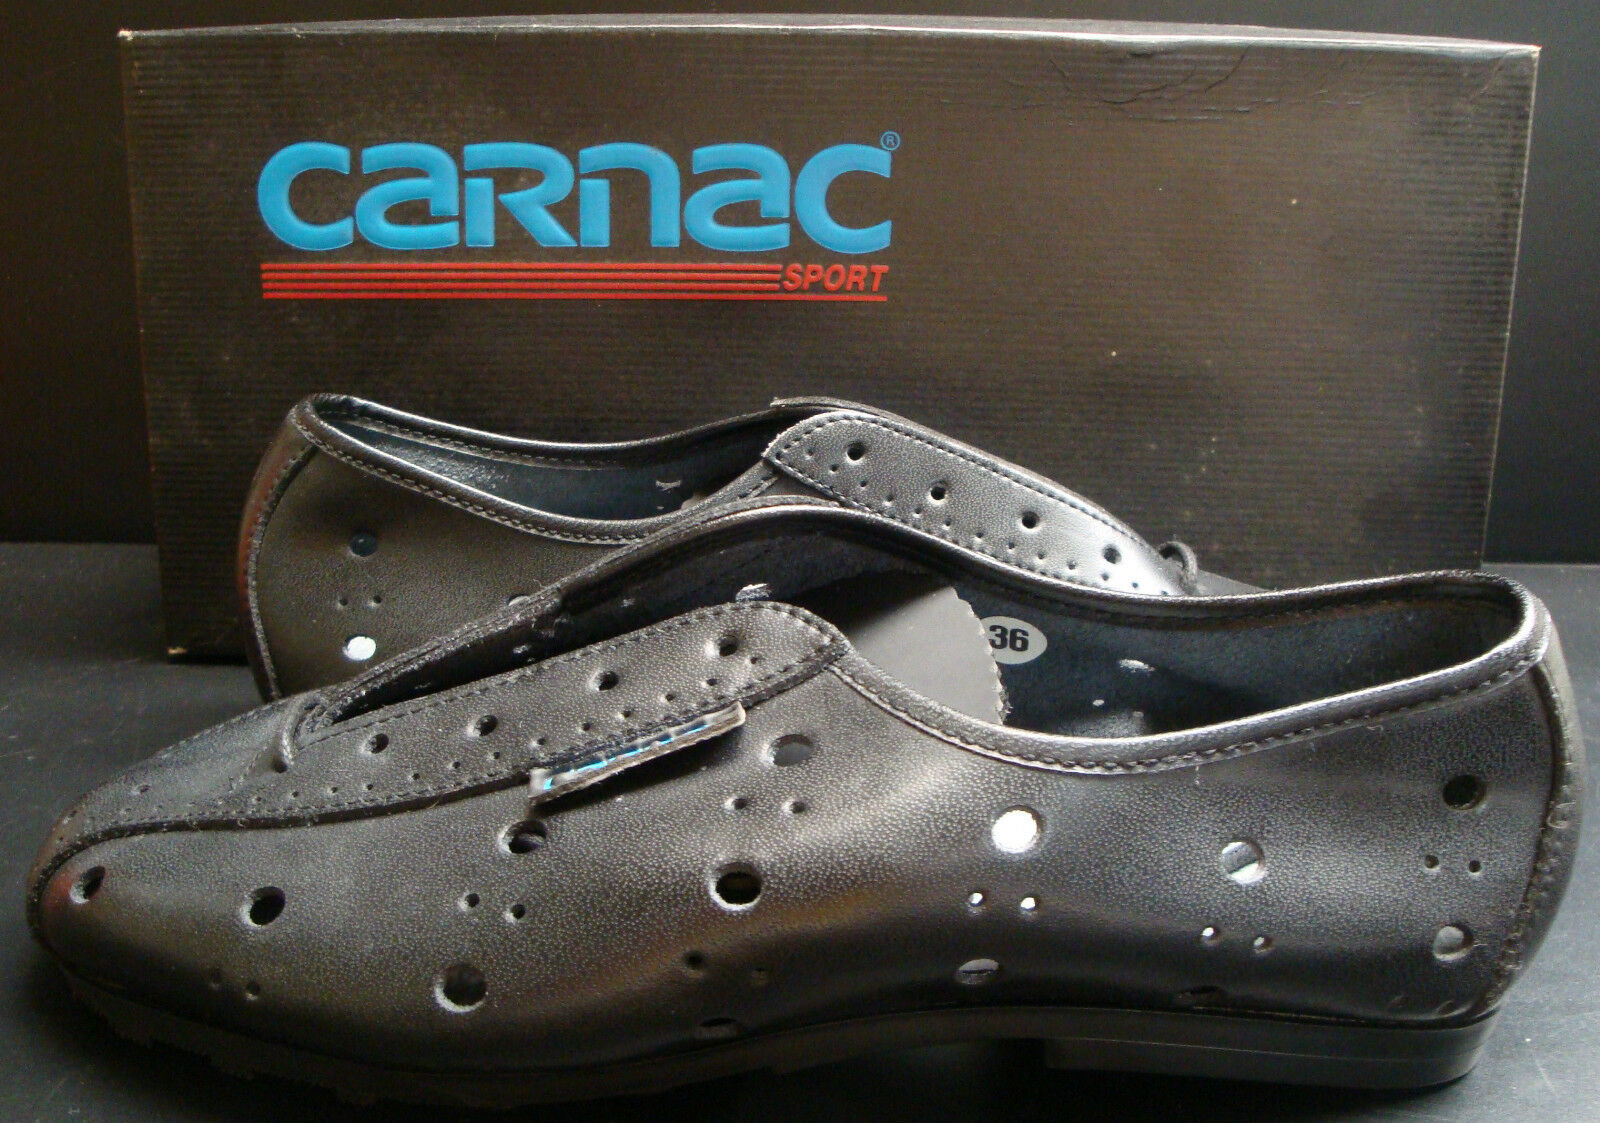 NIB  CARNAC FORCLAZ CYCLO TOURISME SHOES SIZE 36 MADE IN FRANCE VINTAGE